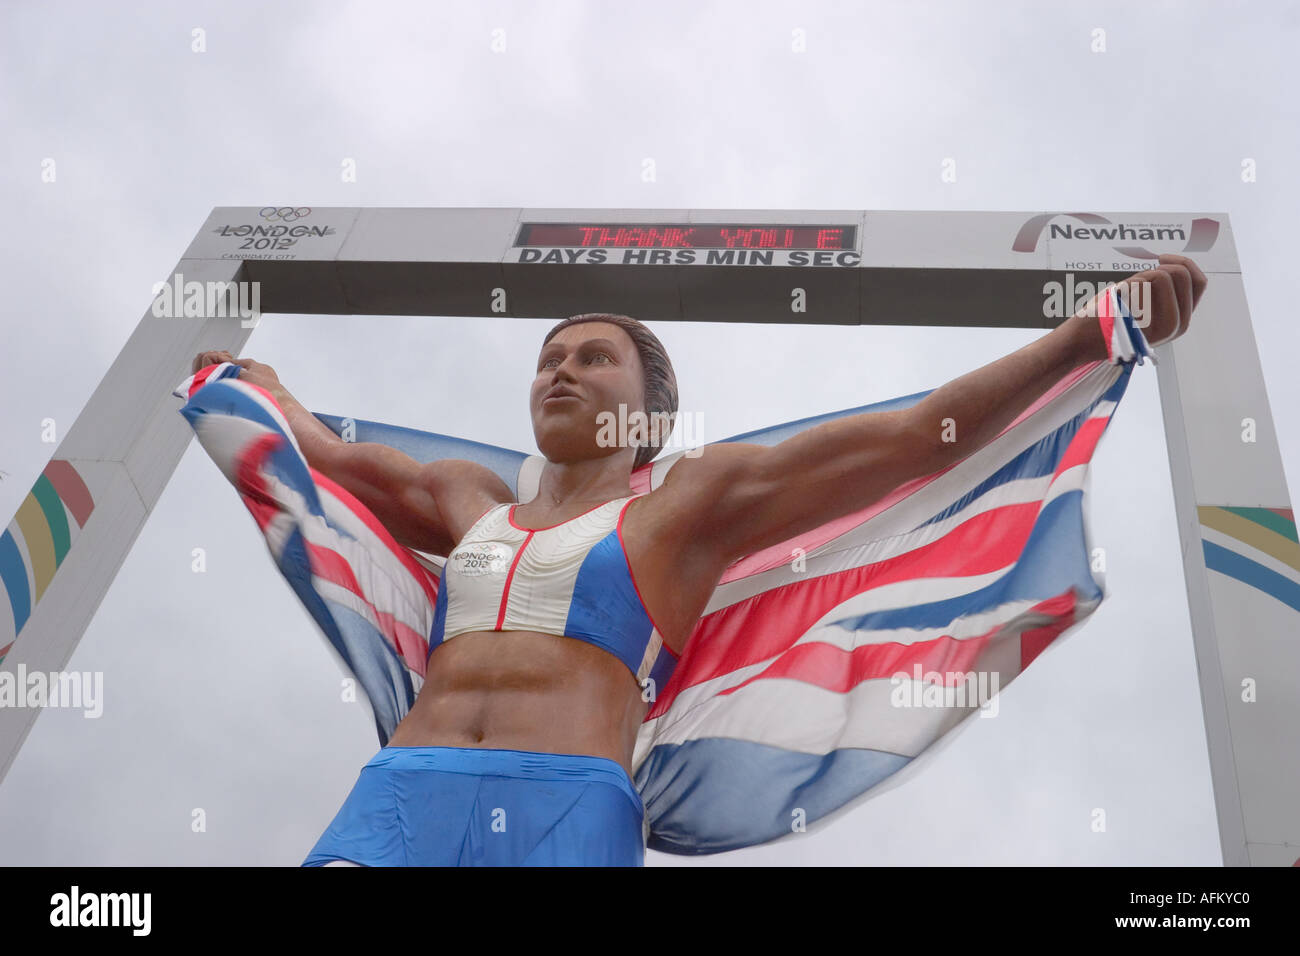 Statue of Kelly Holmes outside Stratford Station the morning after the IOC awarded London the 2012 Games 07/07/05 - Stock Image